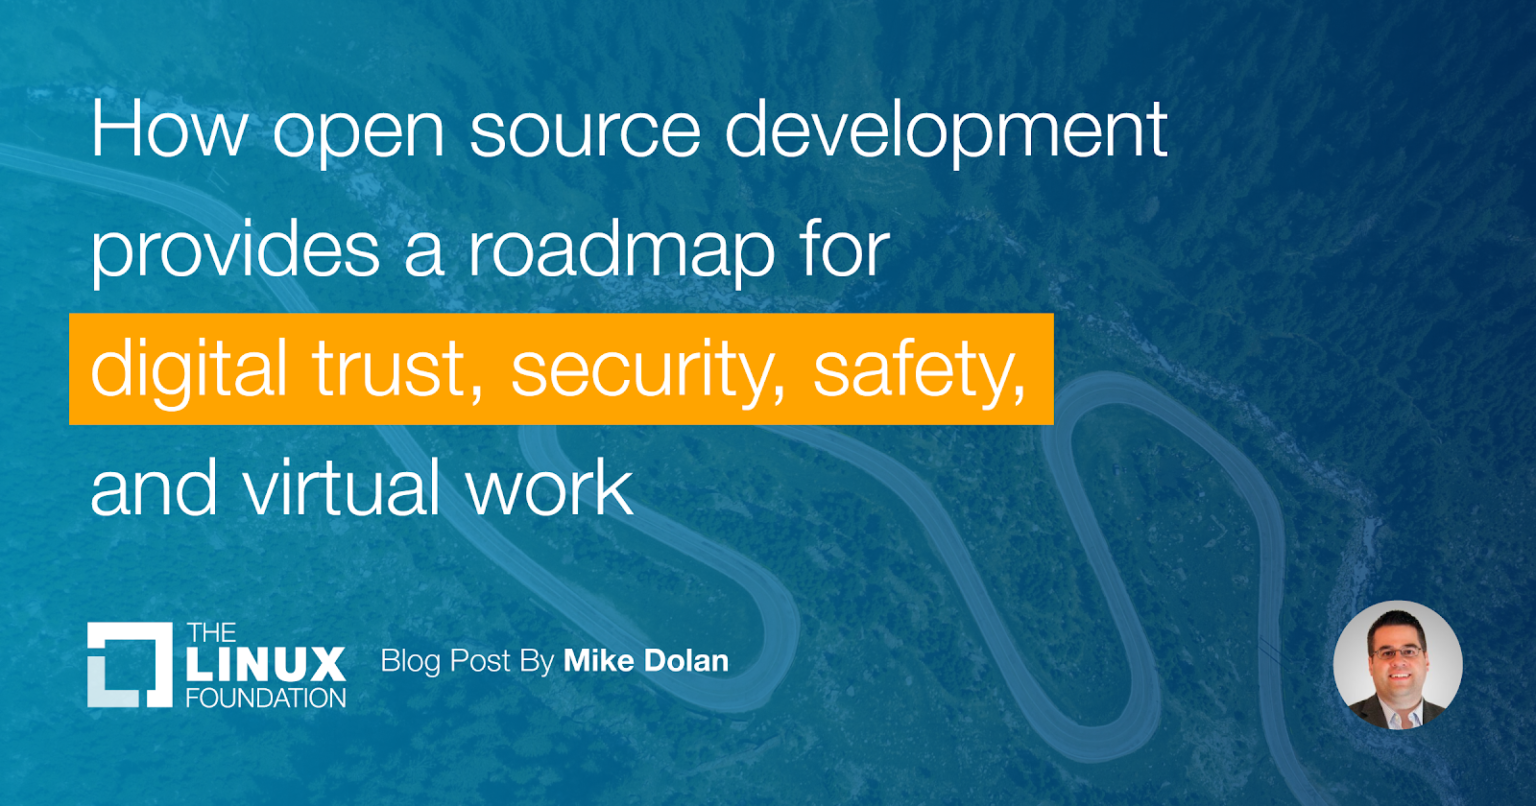 How open source development provides a roadmap for digital trust, security, safety, and virtual work